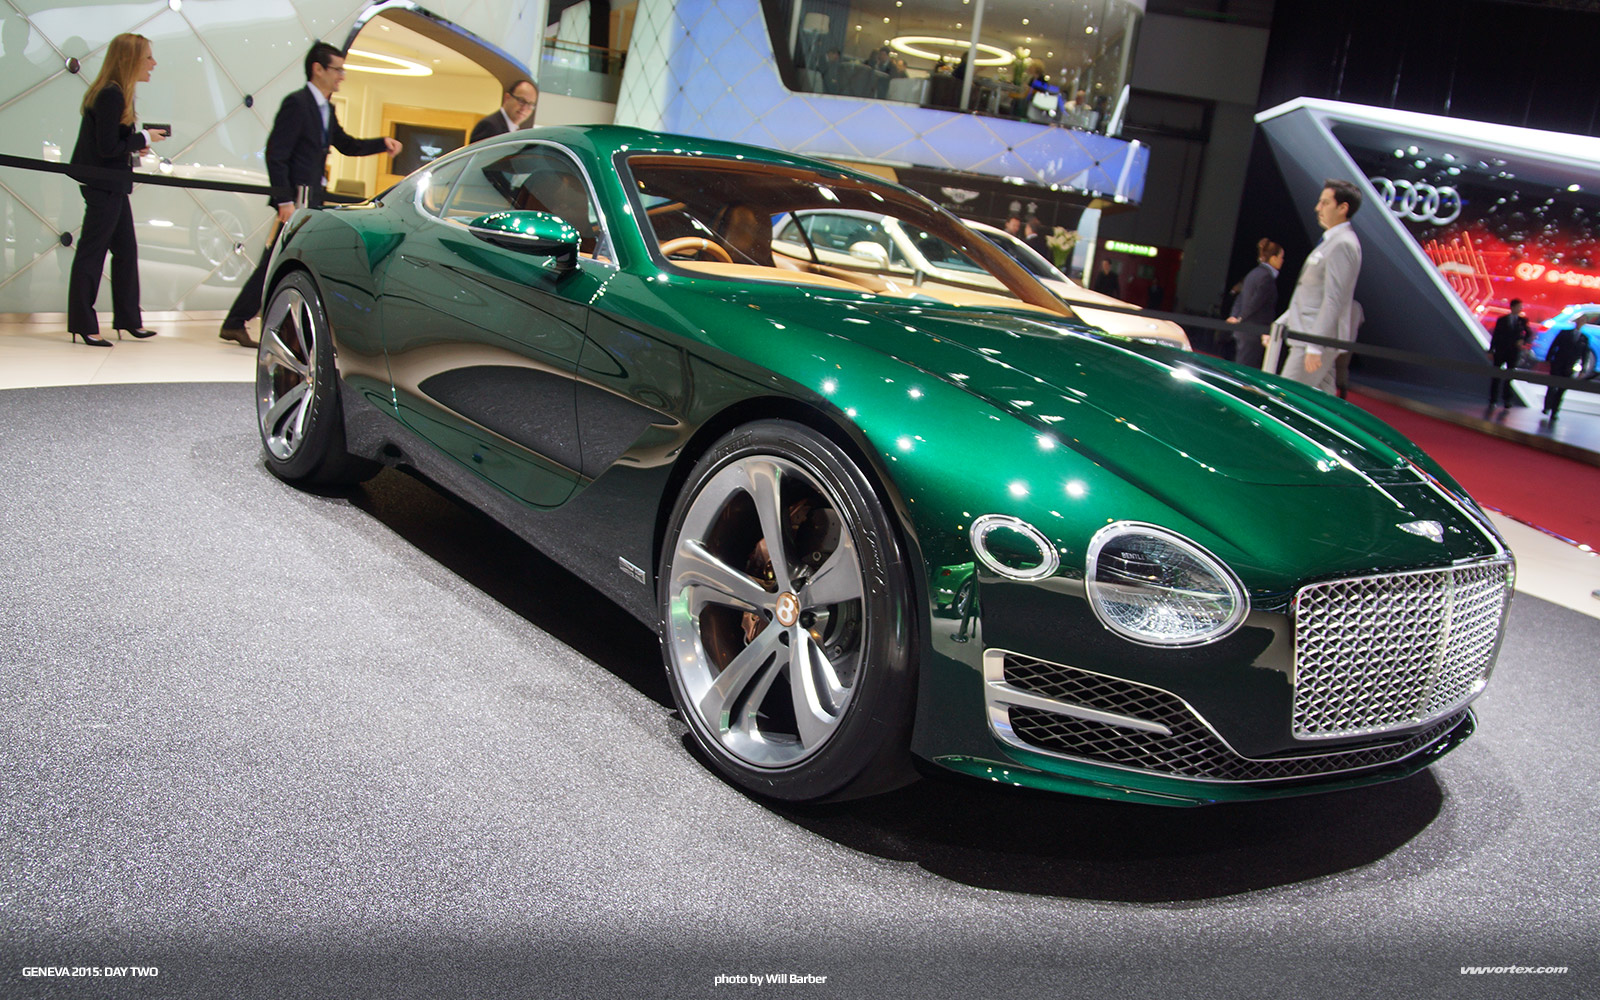 Geneva-2015-Day-Two-Volkswagen-Group-392